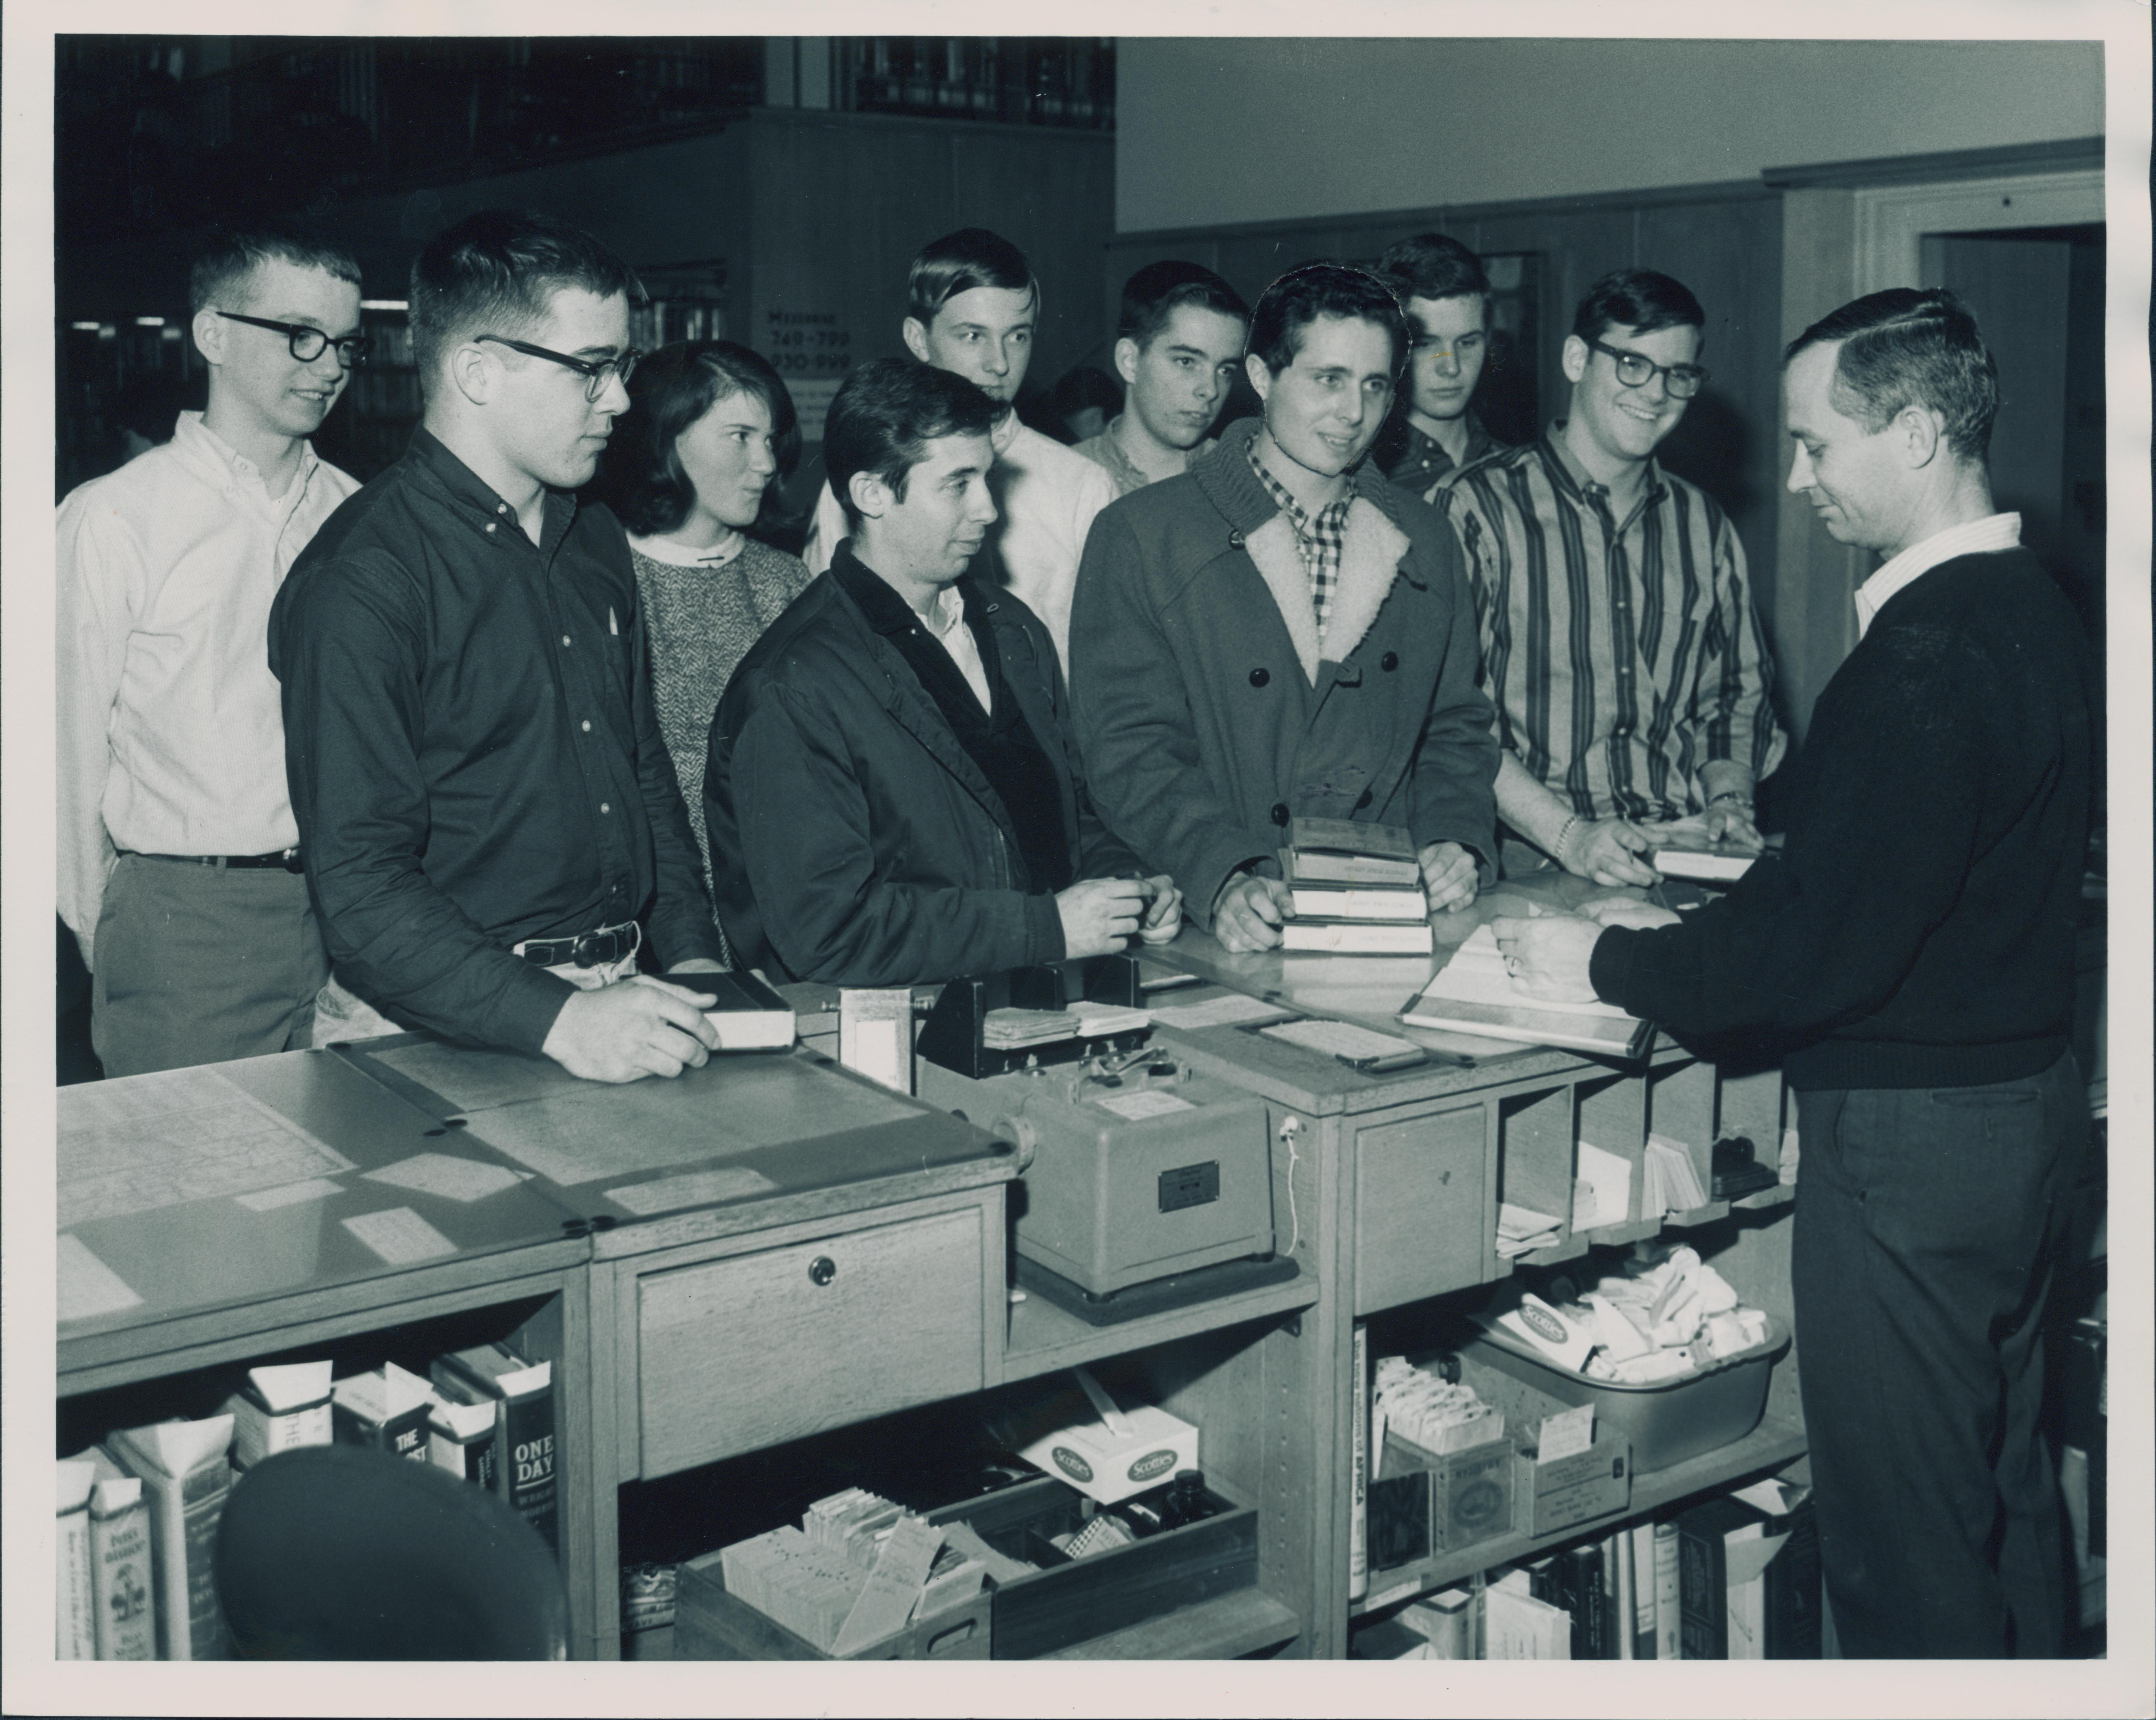 Library-1960-1969-Photo 55